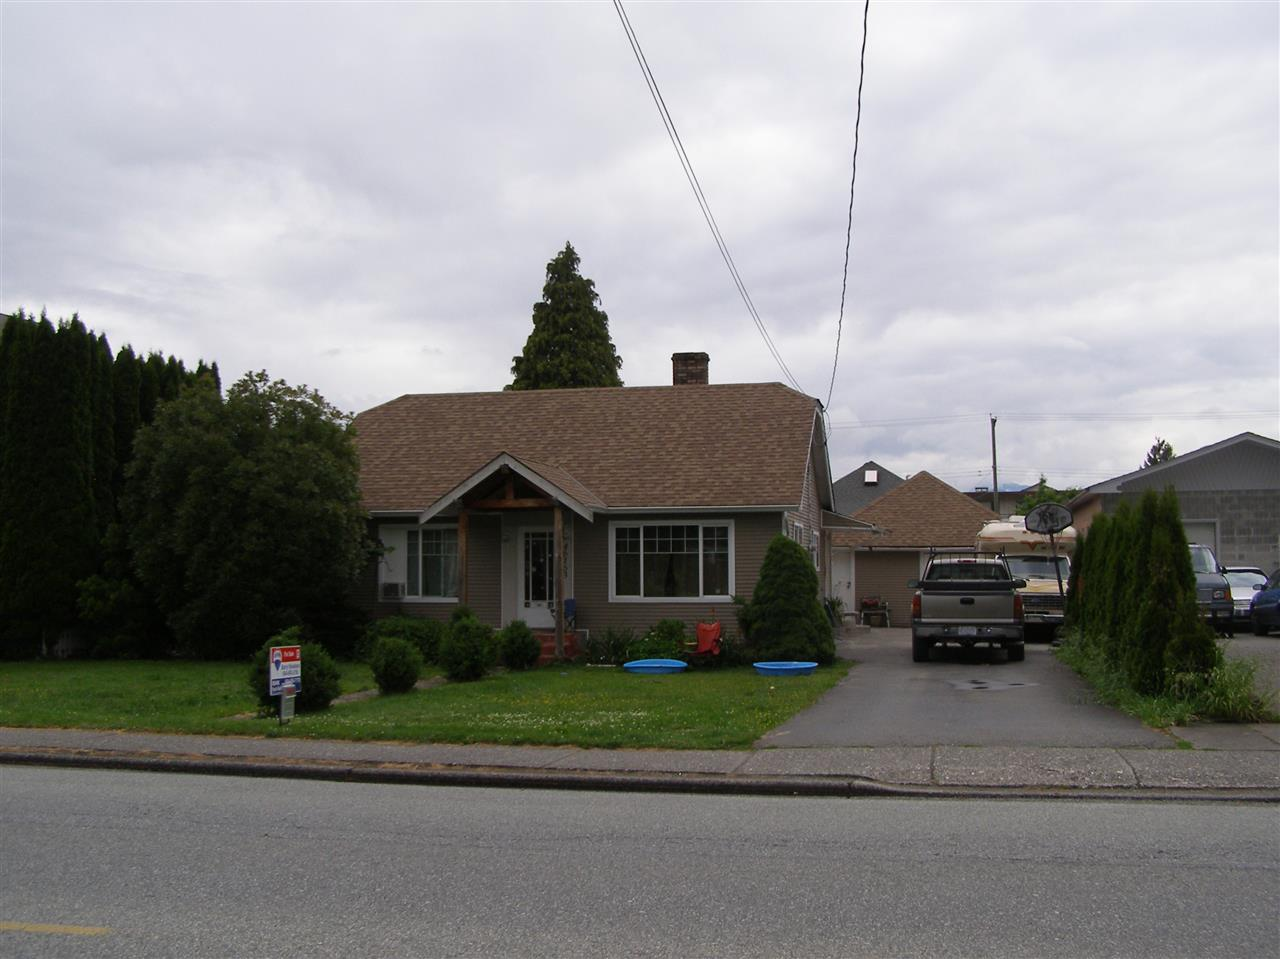 Great 3 bedroom rancher on a big lot with lane access and 20x20 detached garage/shop. In 2011 the home had an addition for a new master bedroom plus new windows , new vinyl siding, new roof and extra insulation installed. Close to all amenities and bus routes making this a good investment/holding property or great first time Buyer opportunity.